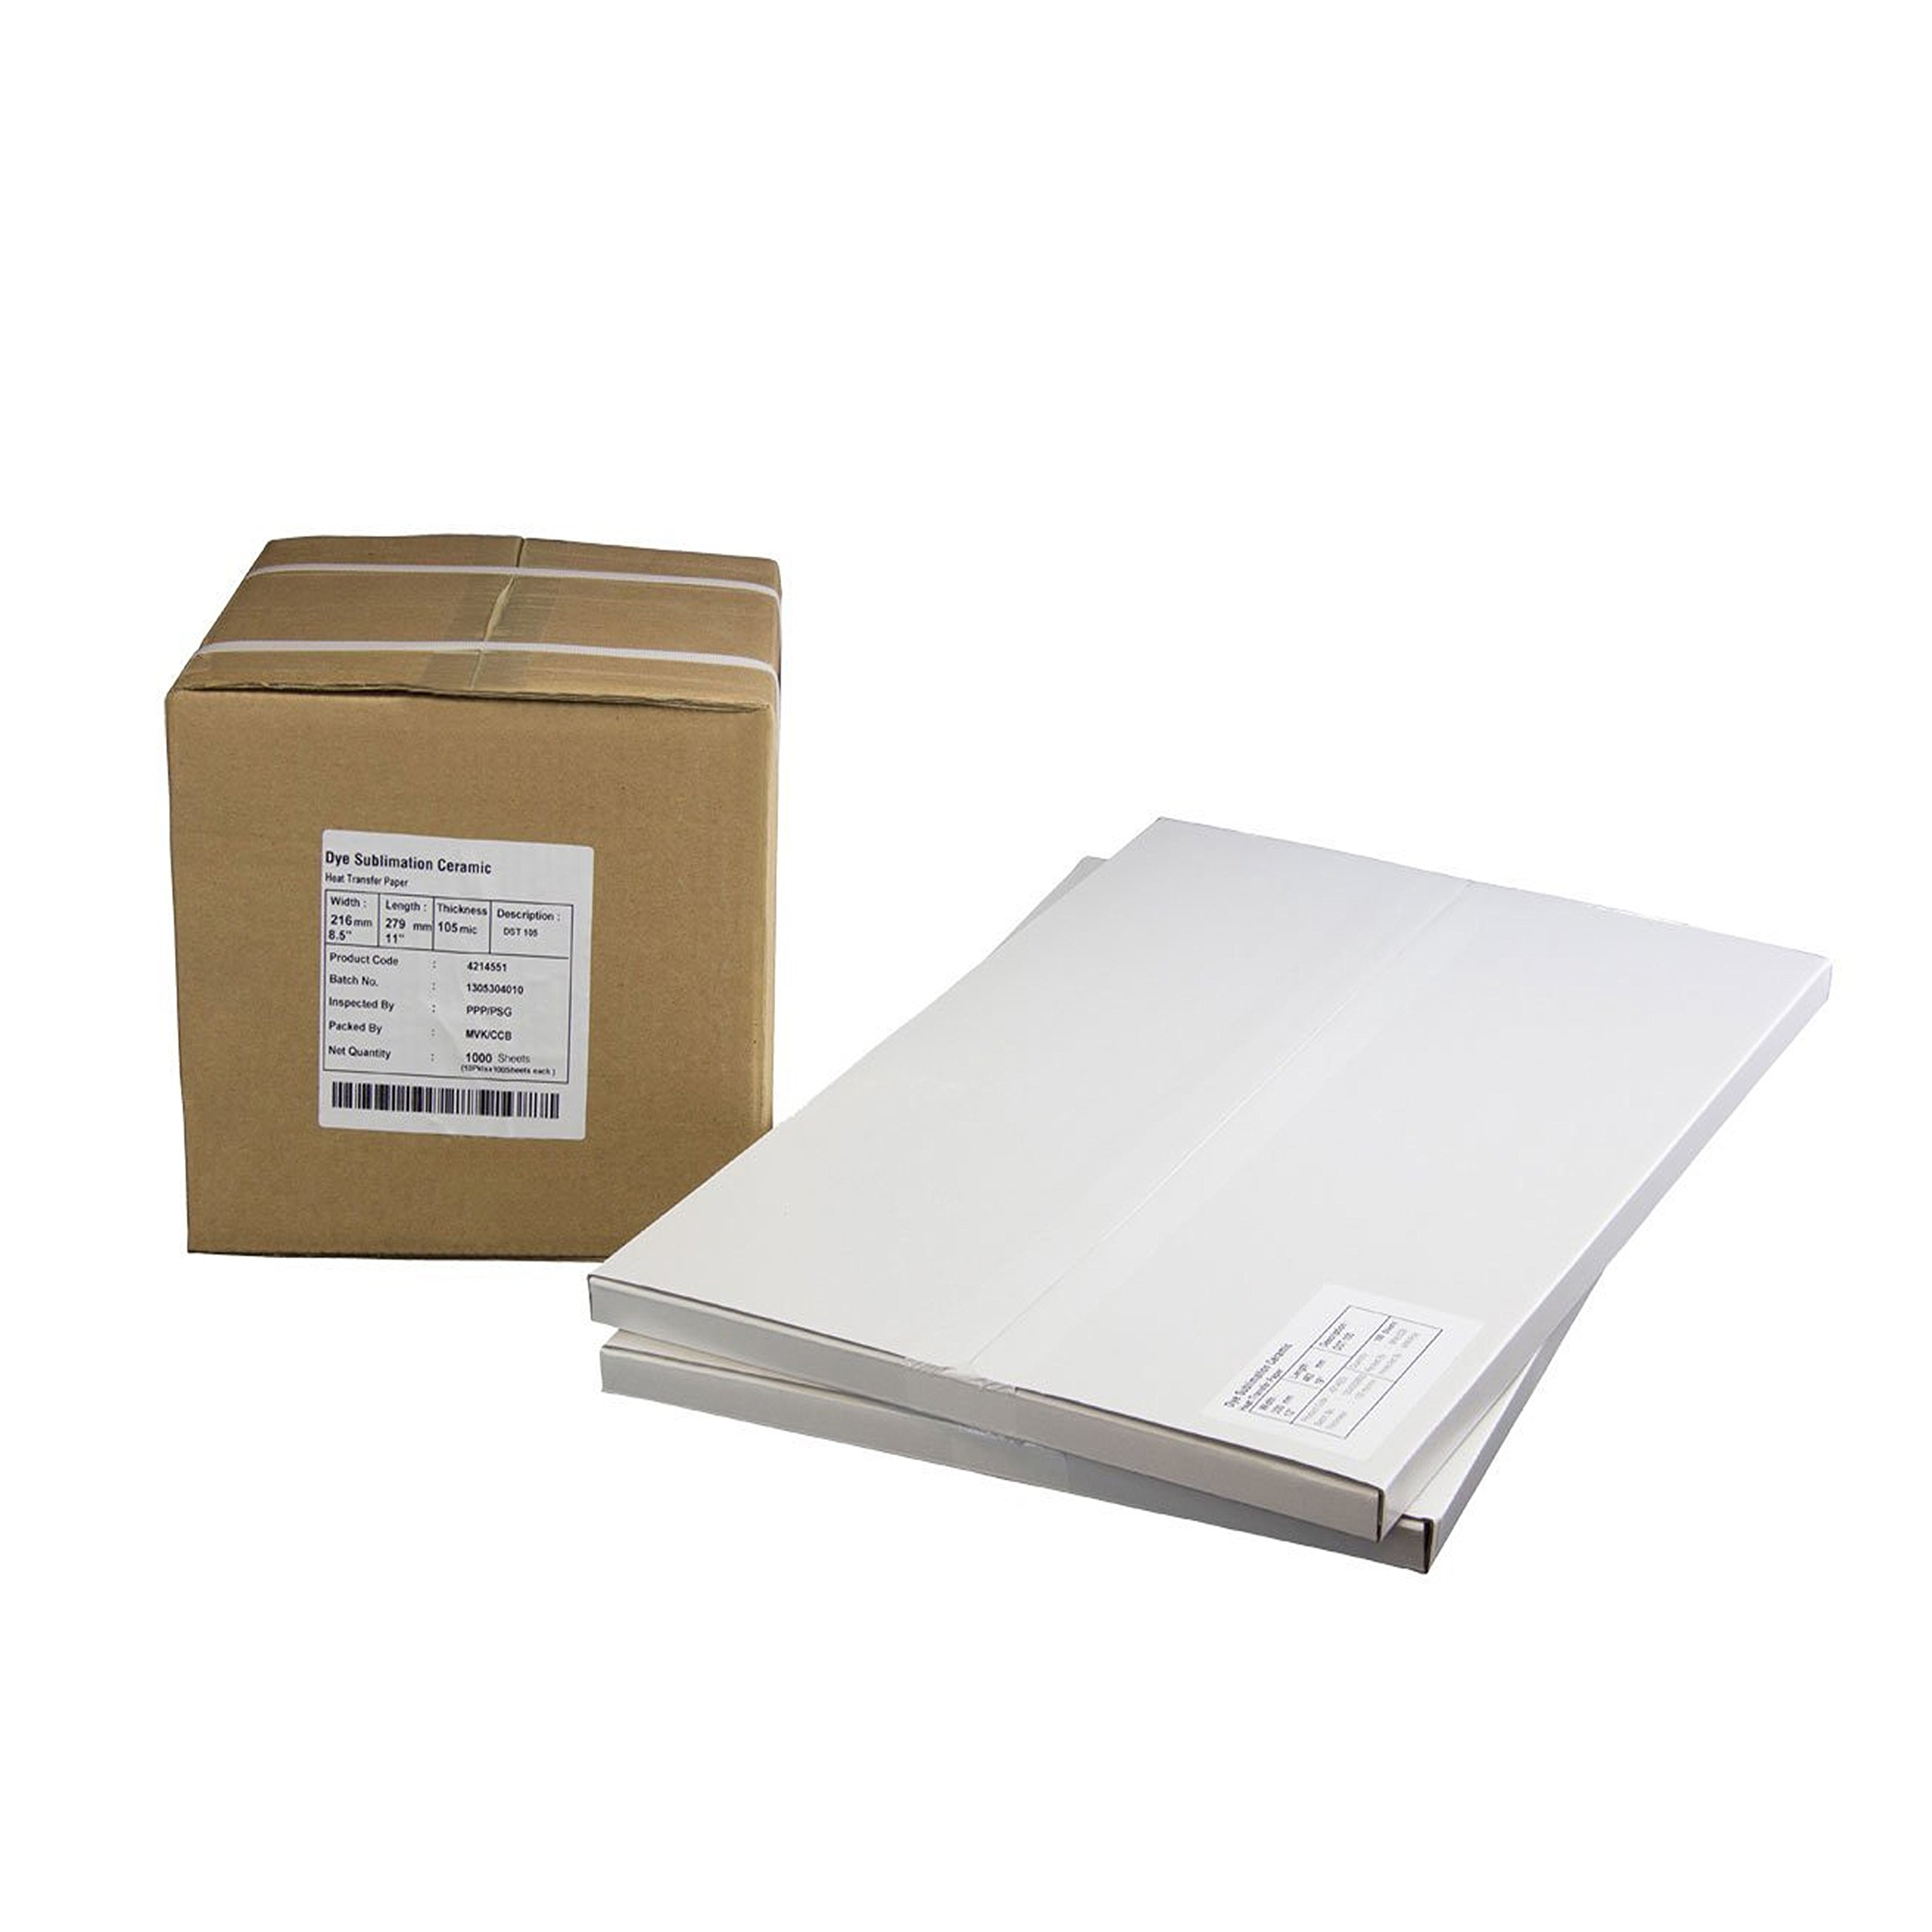 8.5 x 14 Pinnacle Dye Sublimation Paper, 105 gsm, 100 Sheets